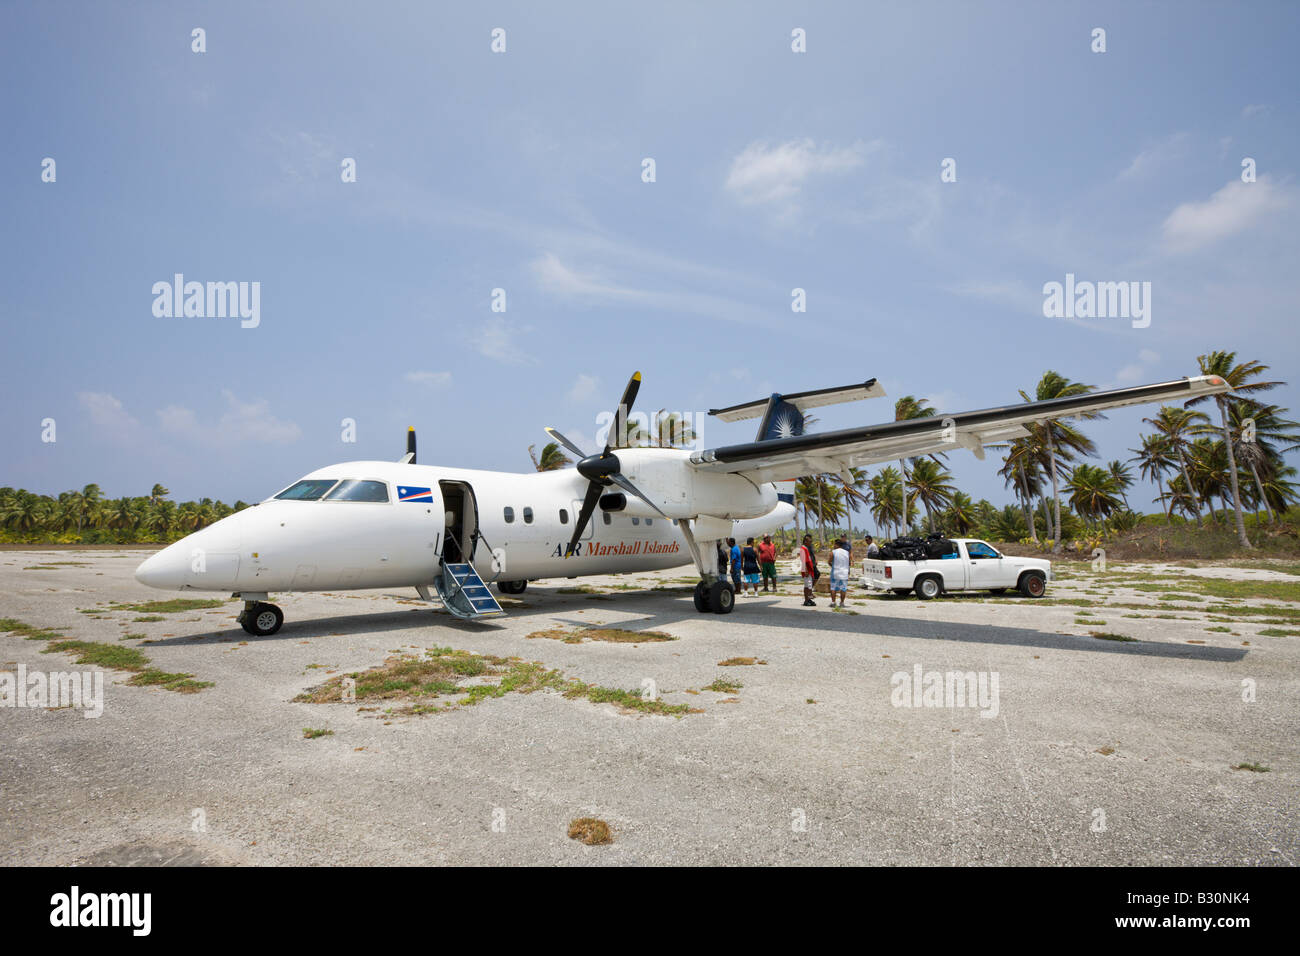 Airstrip at Neighboring Island of Bikini Marshall Islands Bikini Atoll Micronesia Pacific Ocean - Stock Image